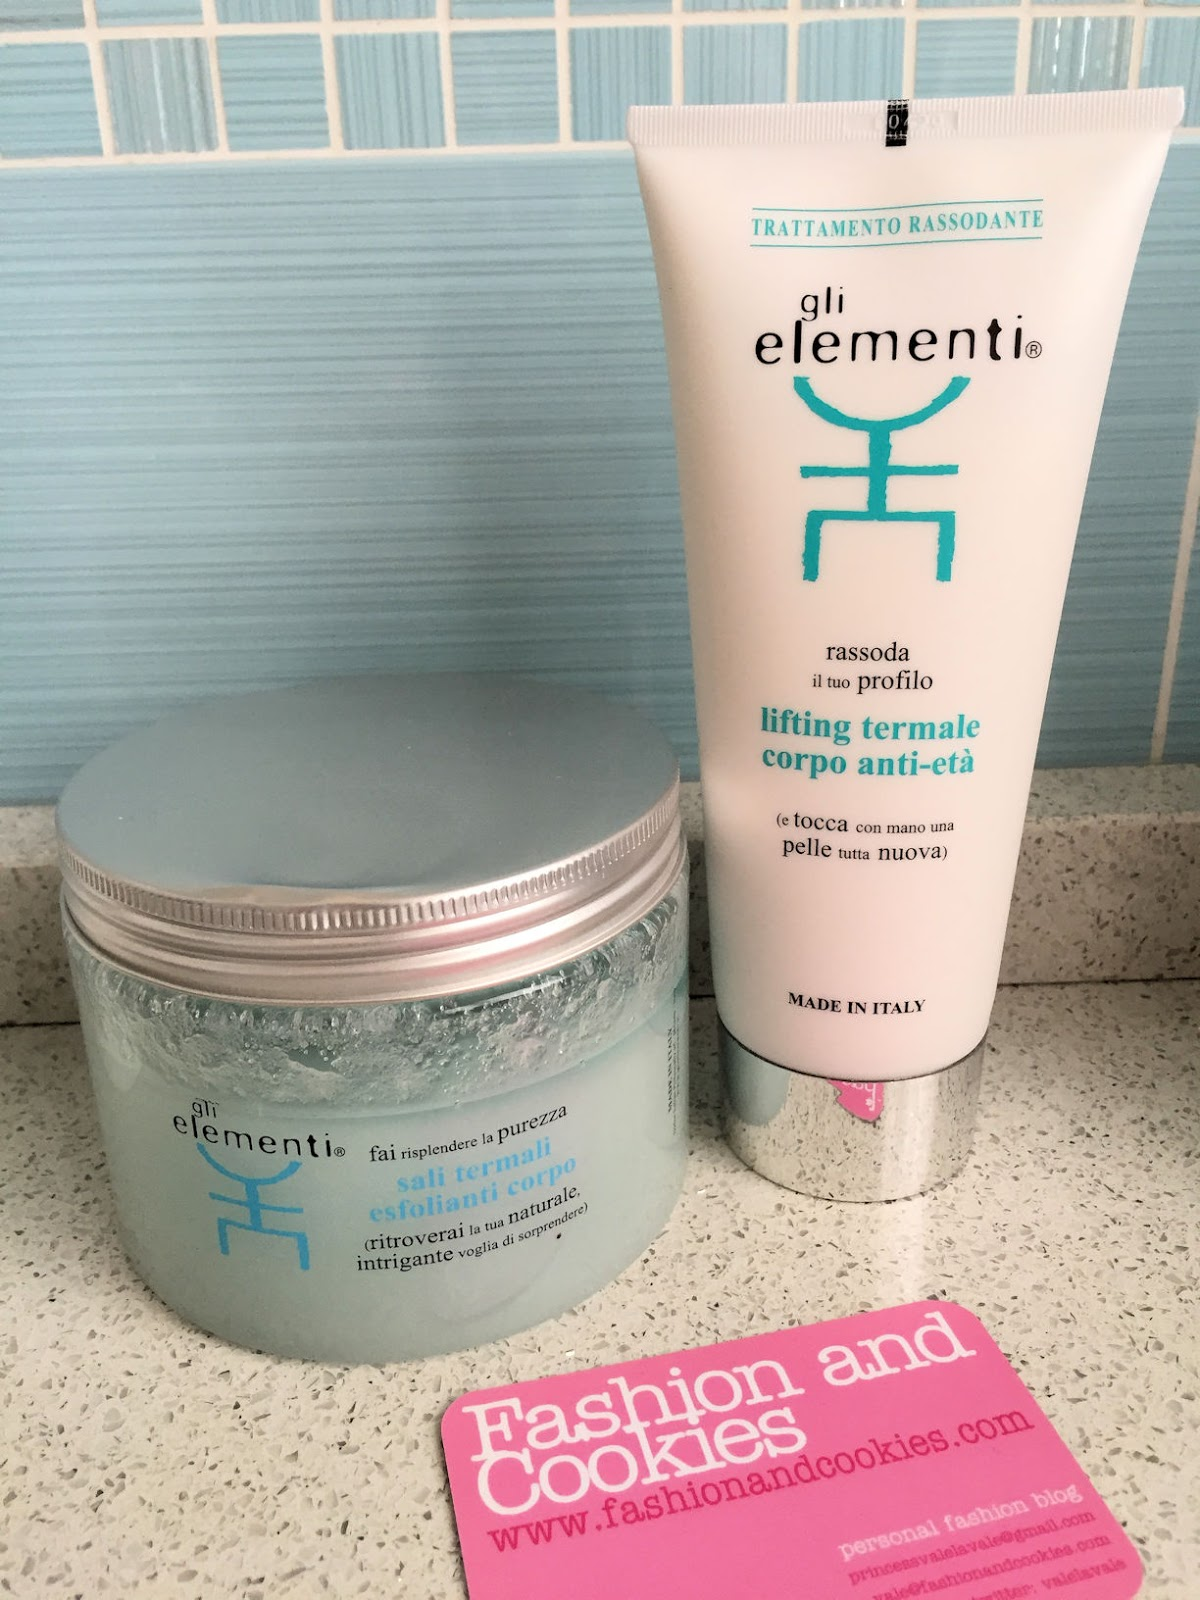 Home SPA secrets: Gli Elementi geothermal scrub and body lifting on Fashion and Cookies beauty blog, beauty blogger